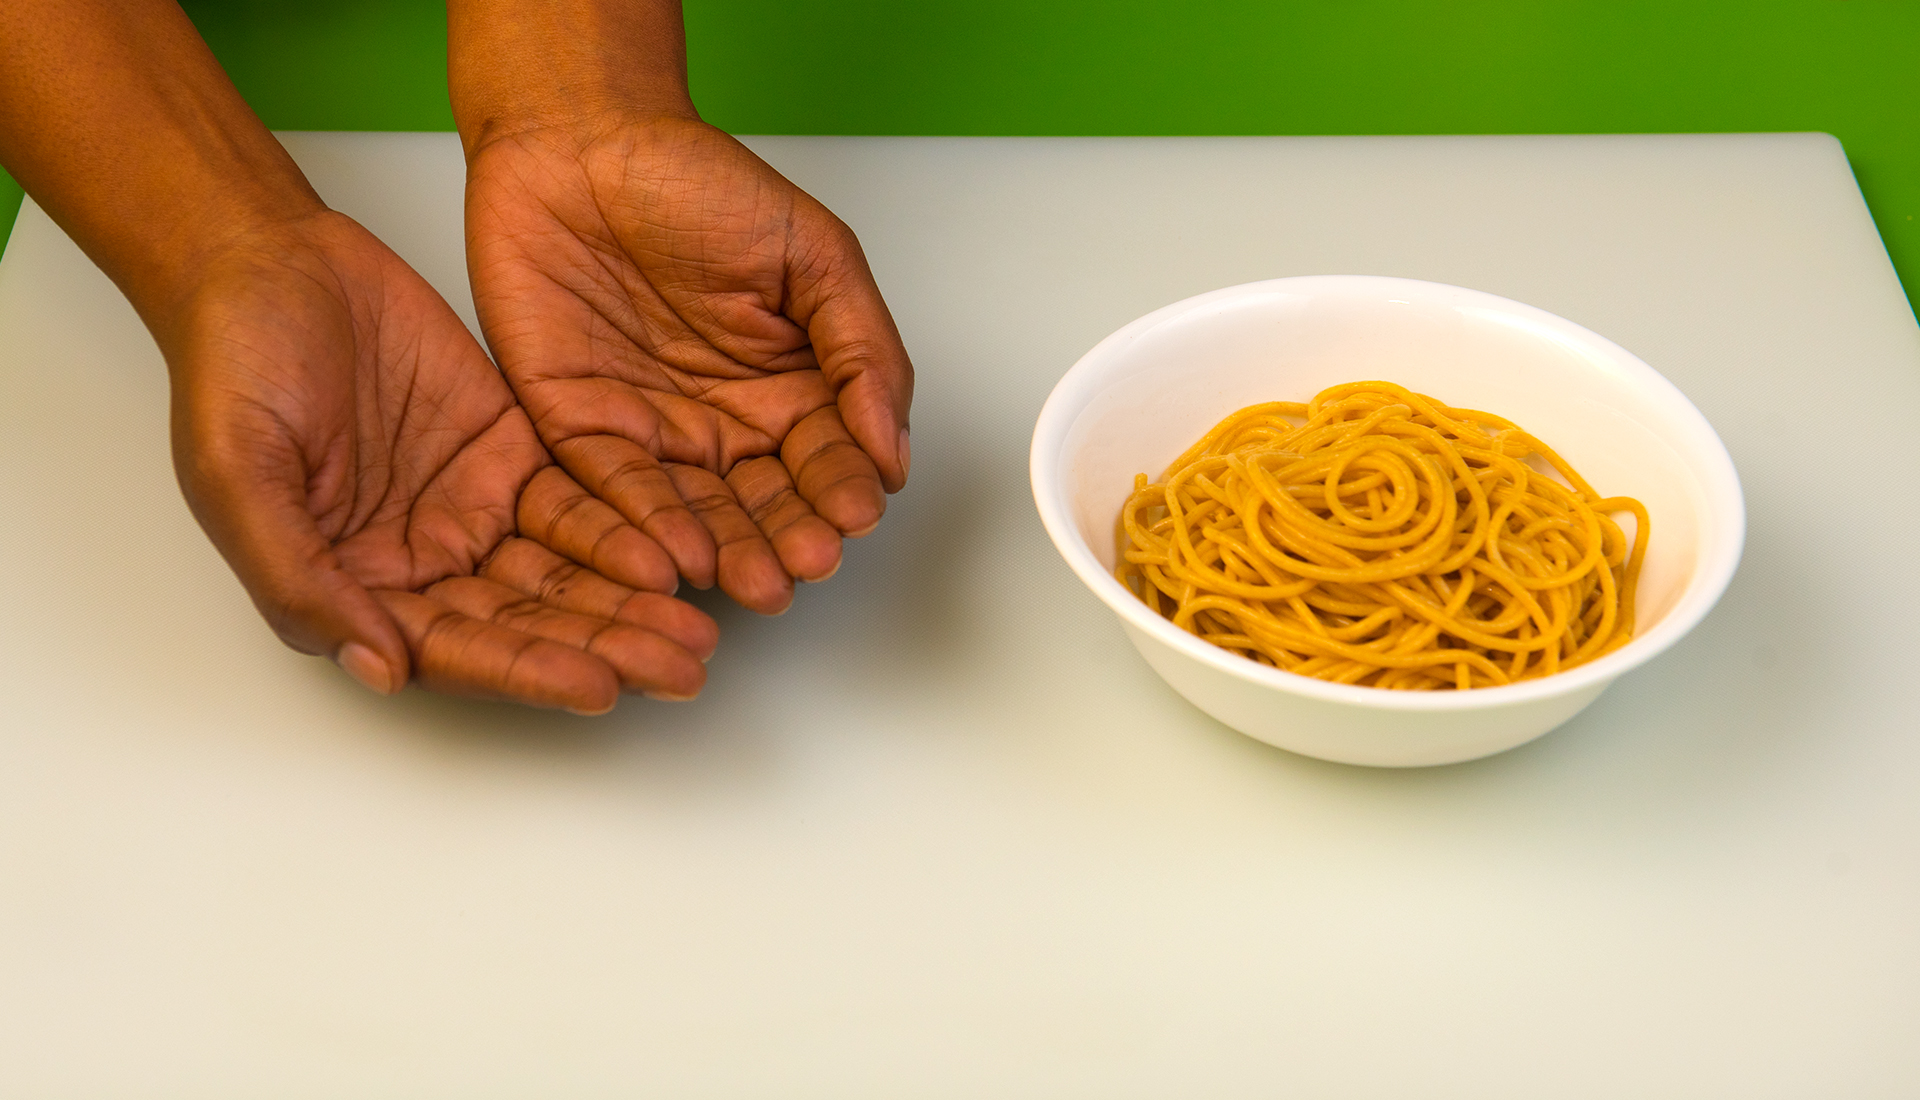 two open hands palm up beside a bowl of spaghetti noodles